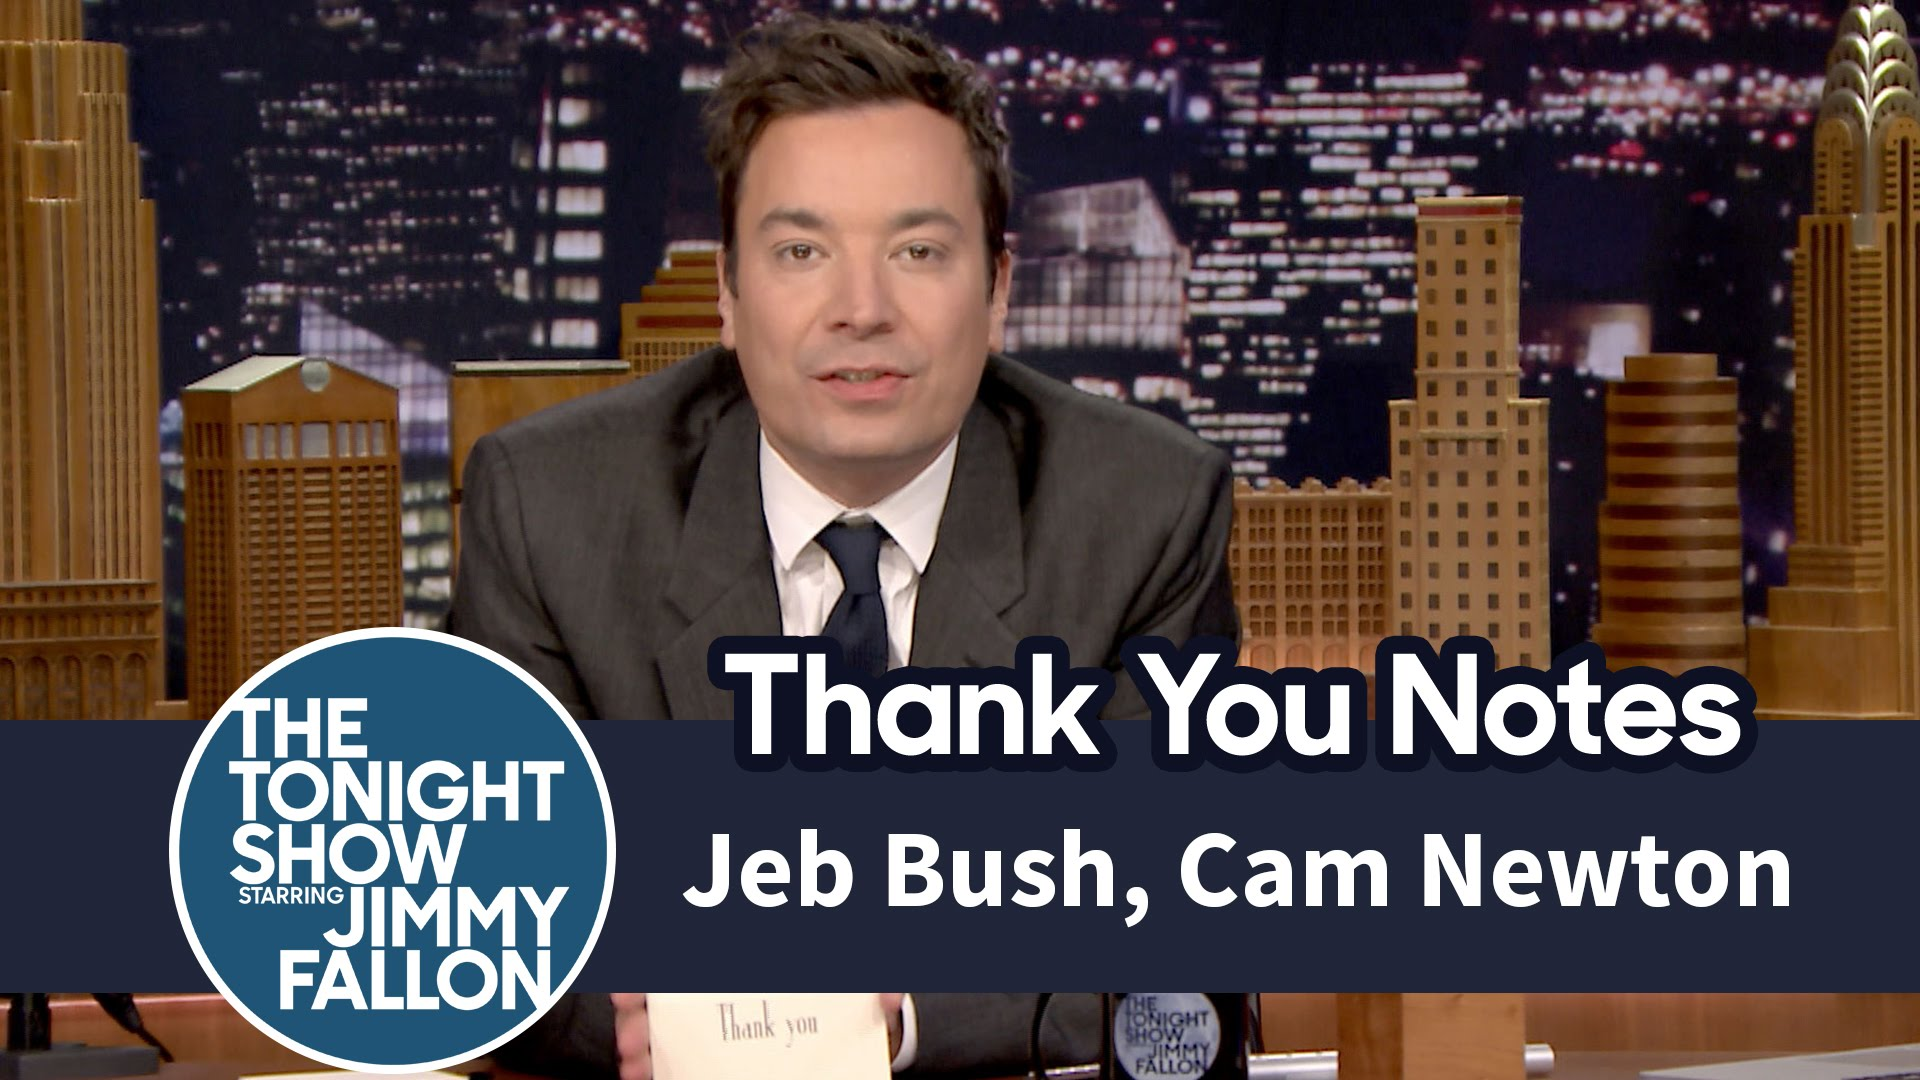 Watch Late Night with Jimmy Fallon Season  - Thank You Notes: Jeb Bush, Cam Newton Online